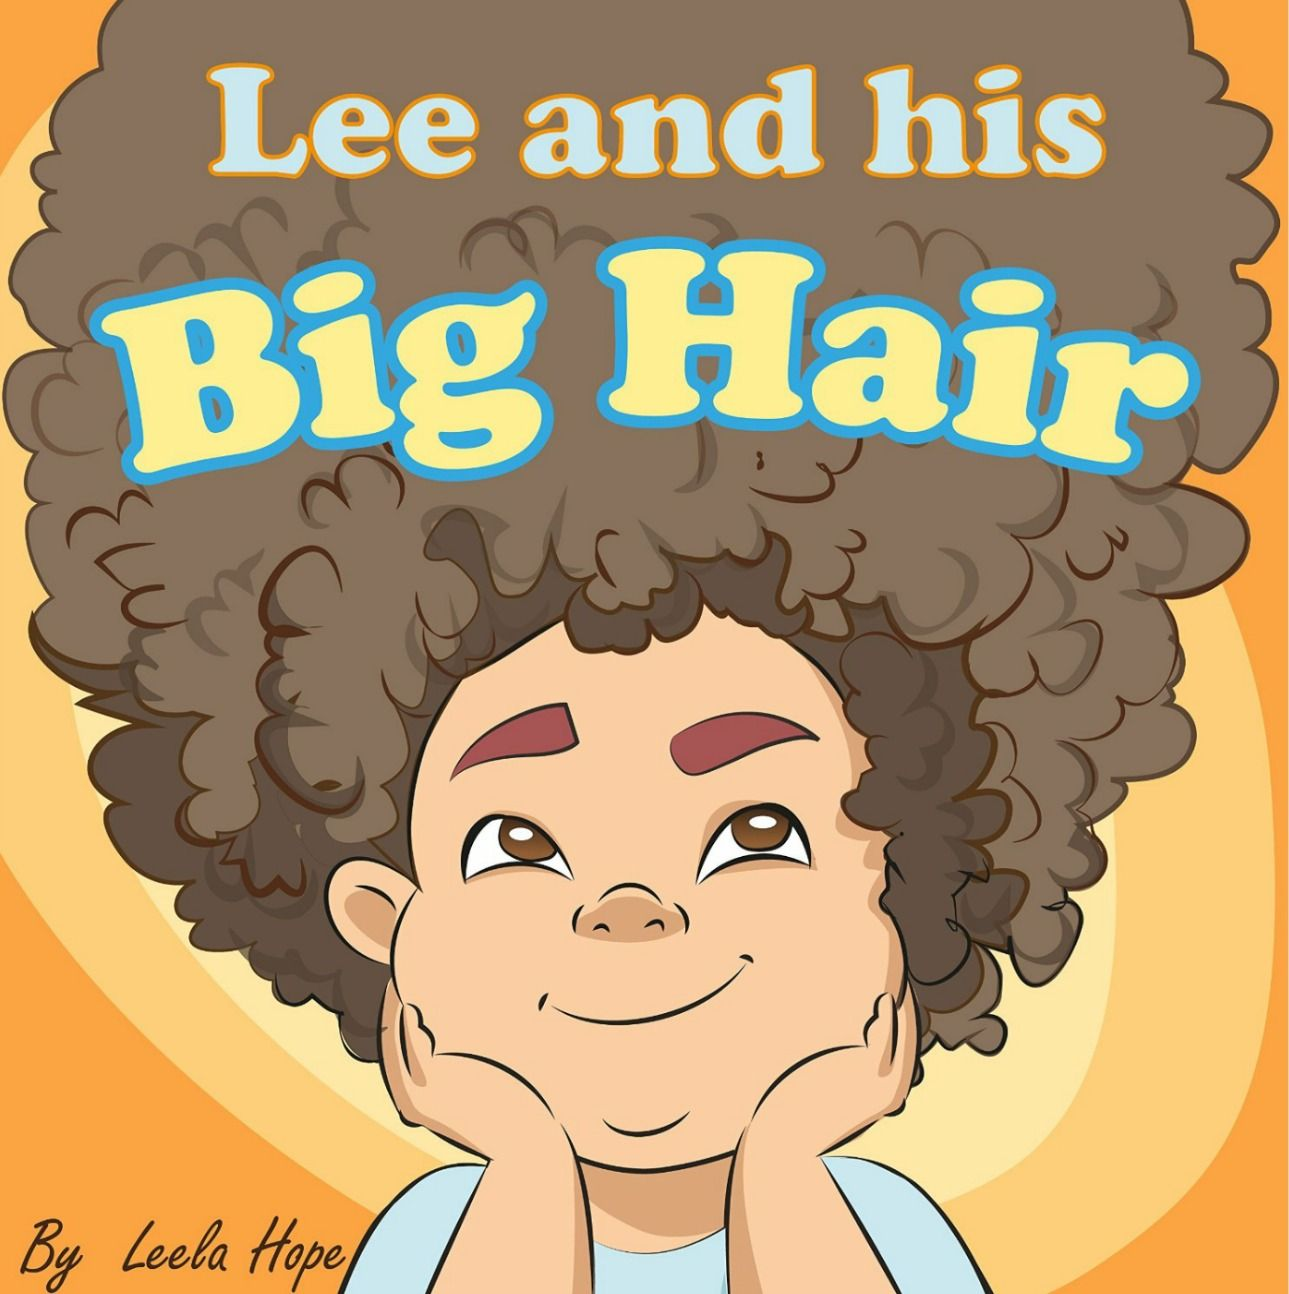 I Dainty It A Leela Hope book review Childrens books